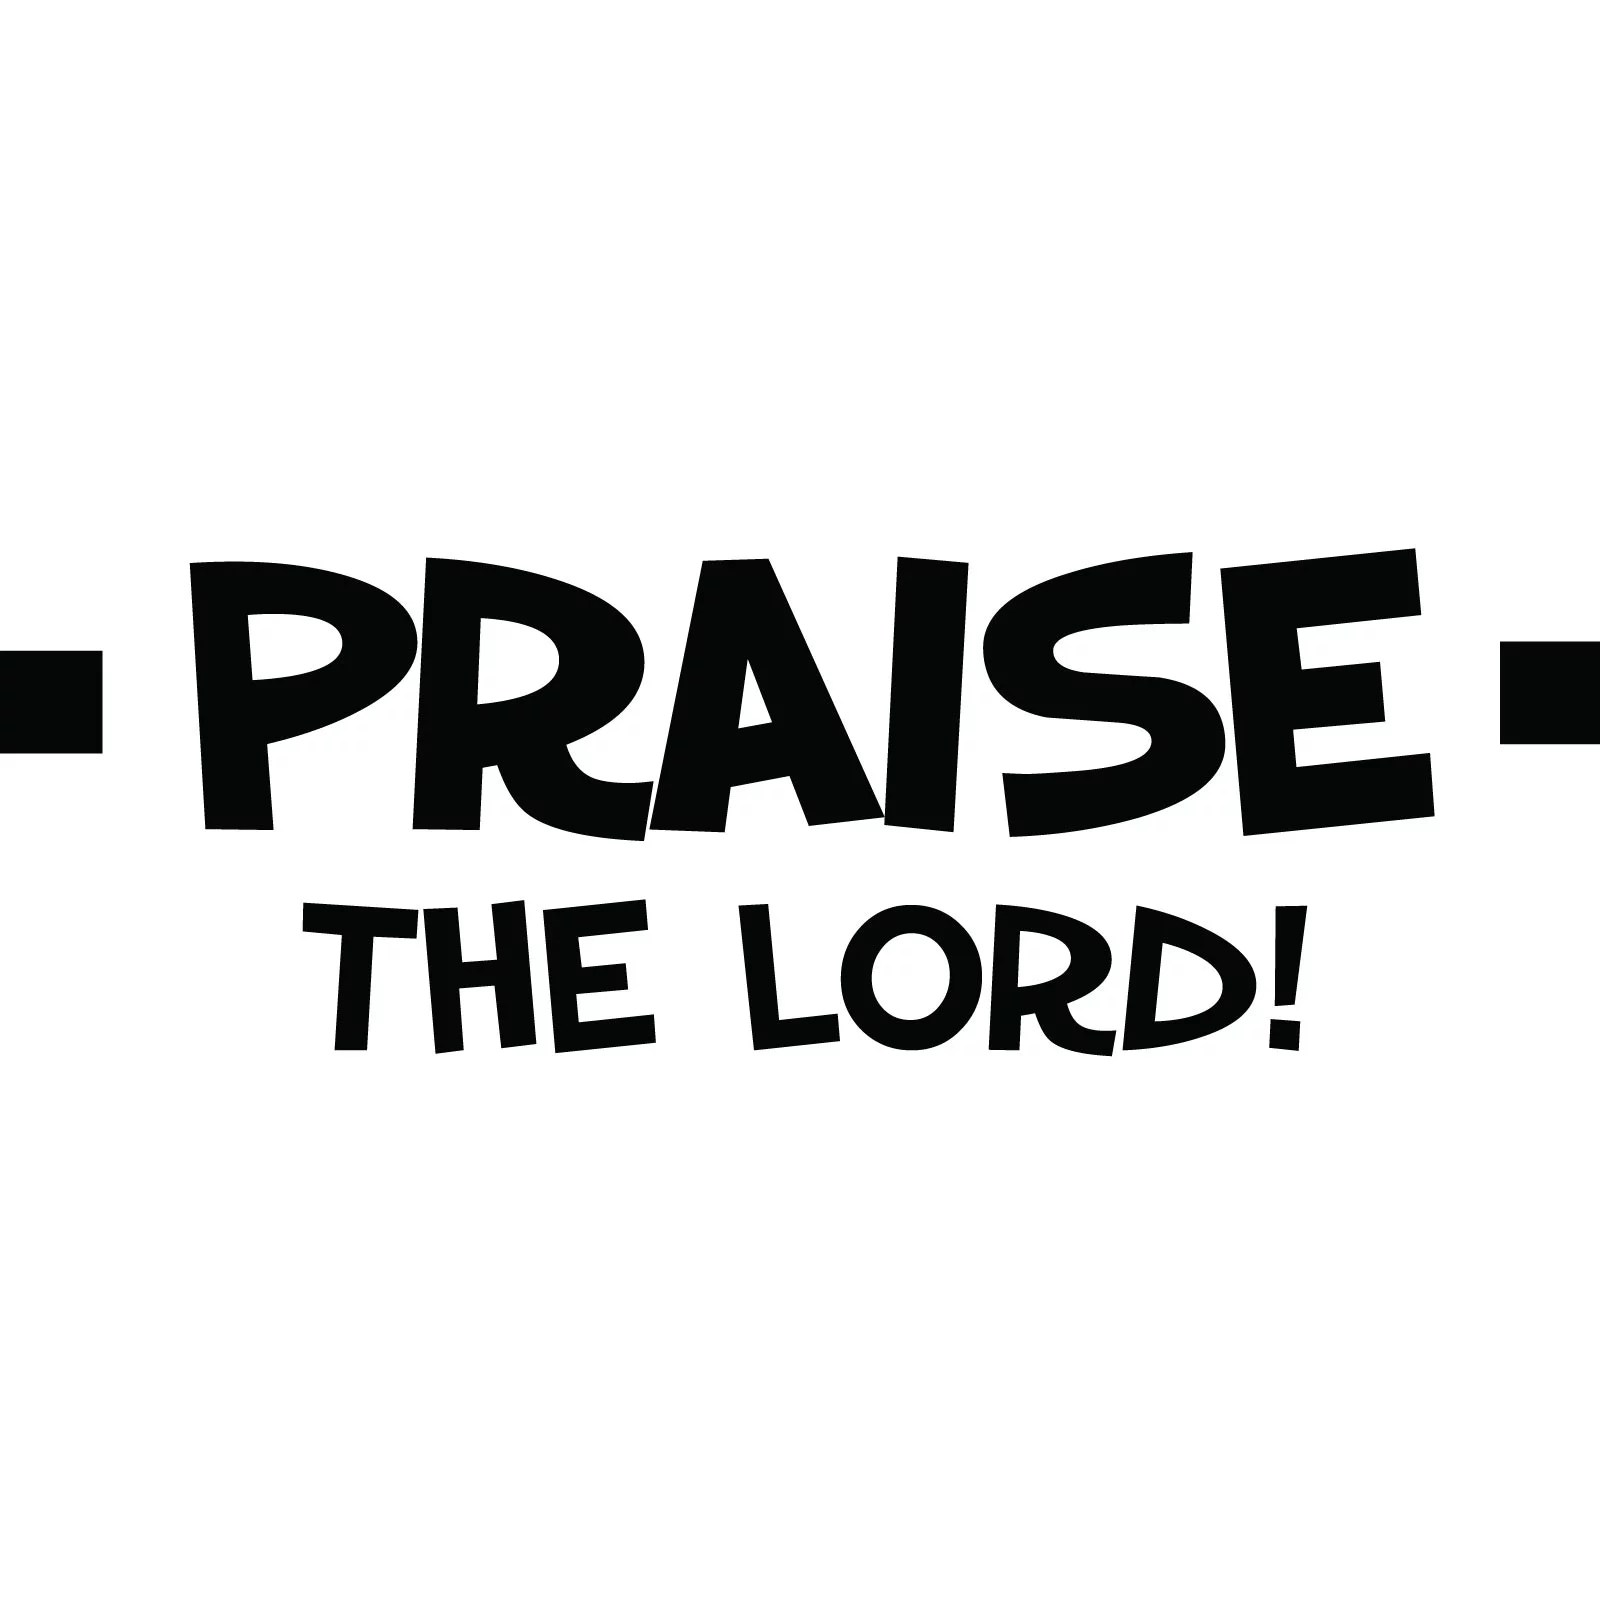 Praise The Lord Religious Quote Wall Sticker